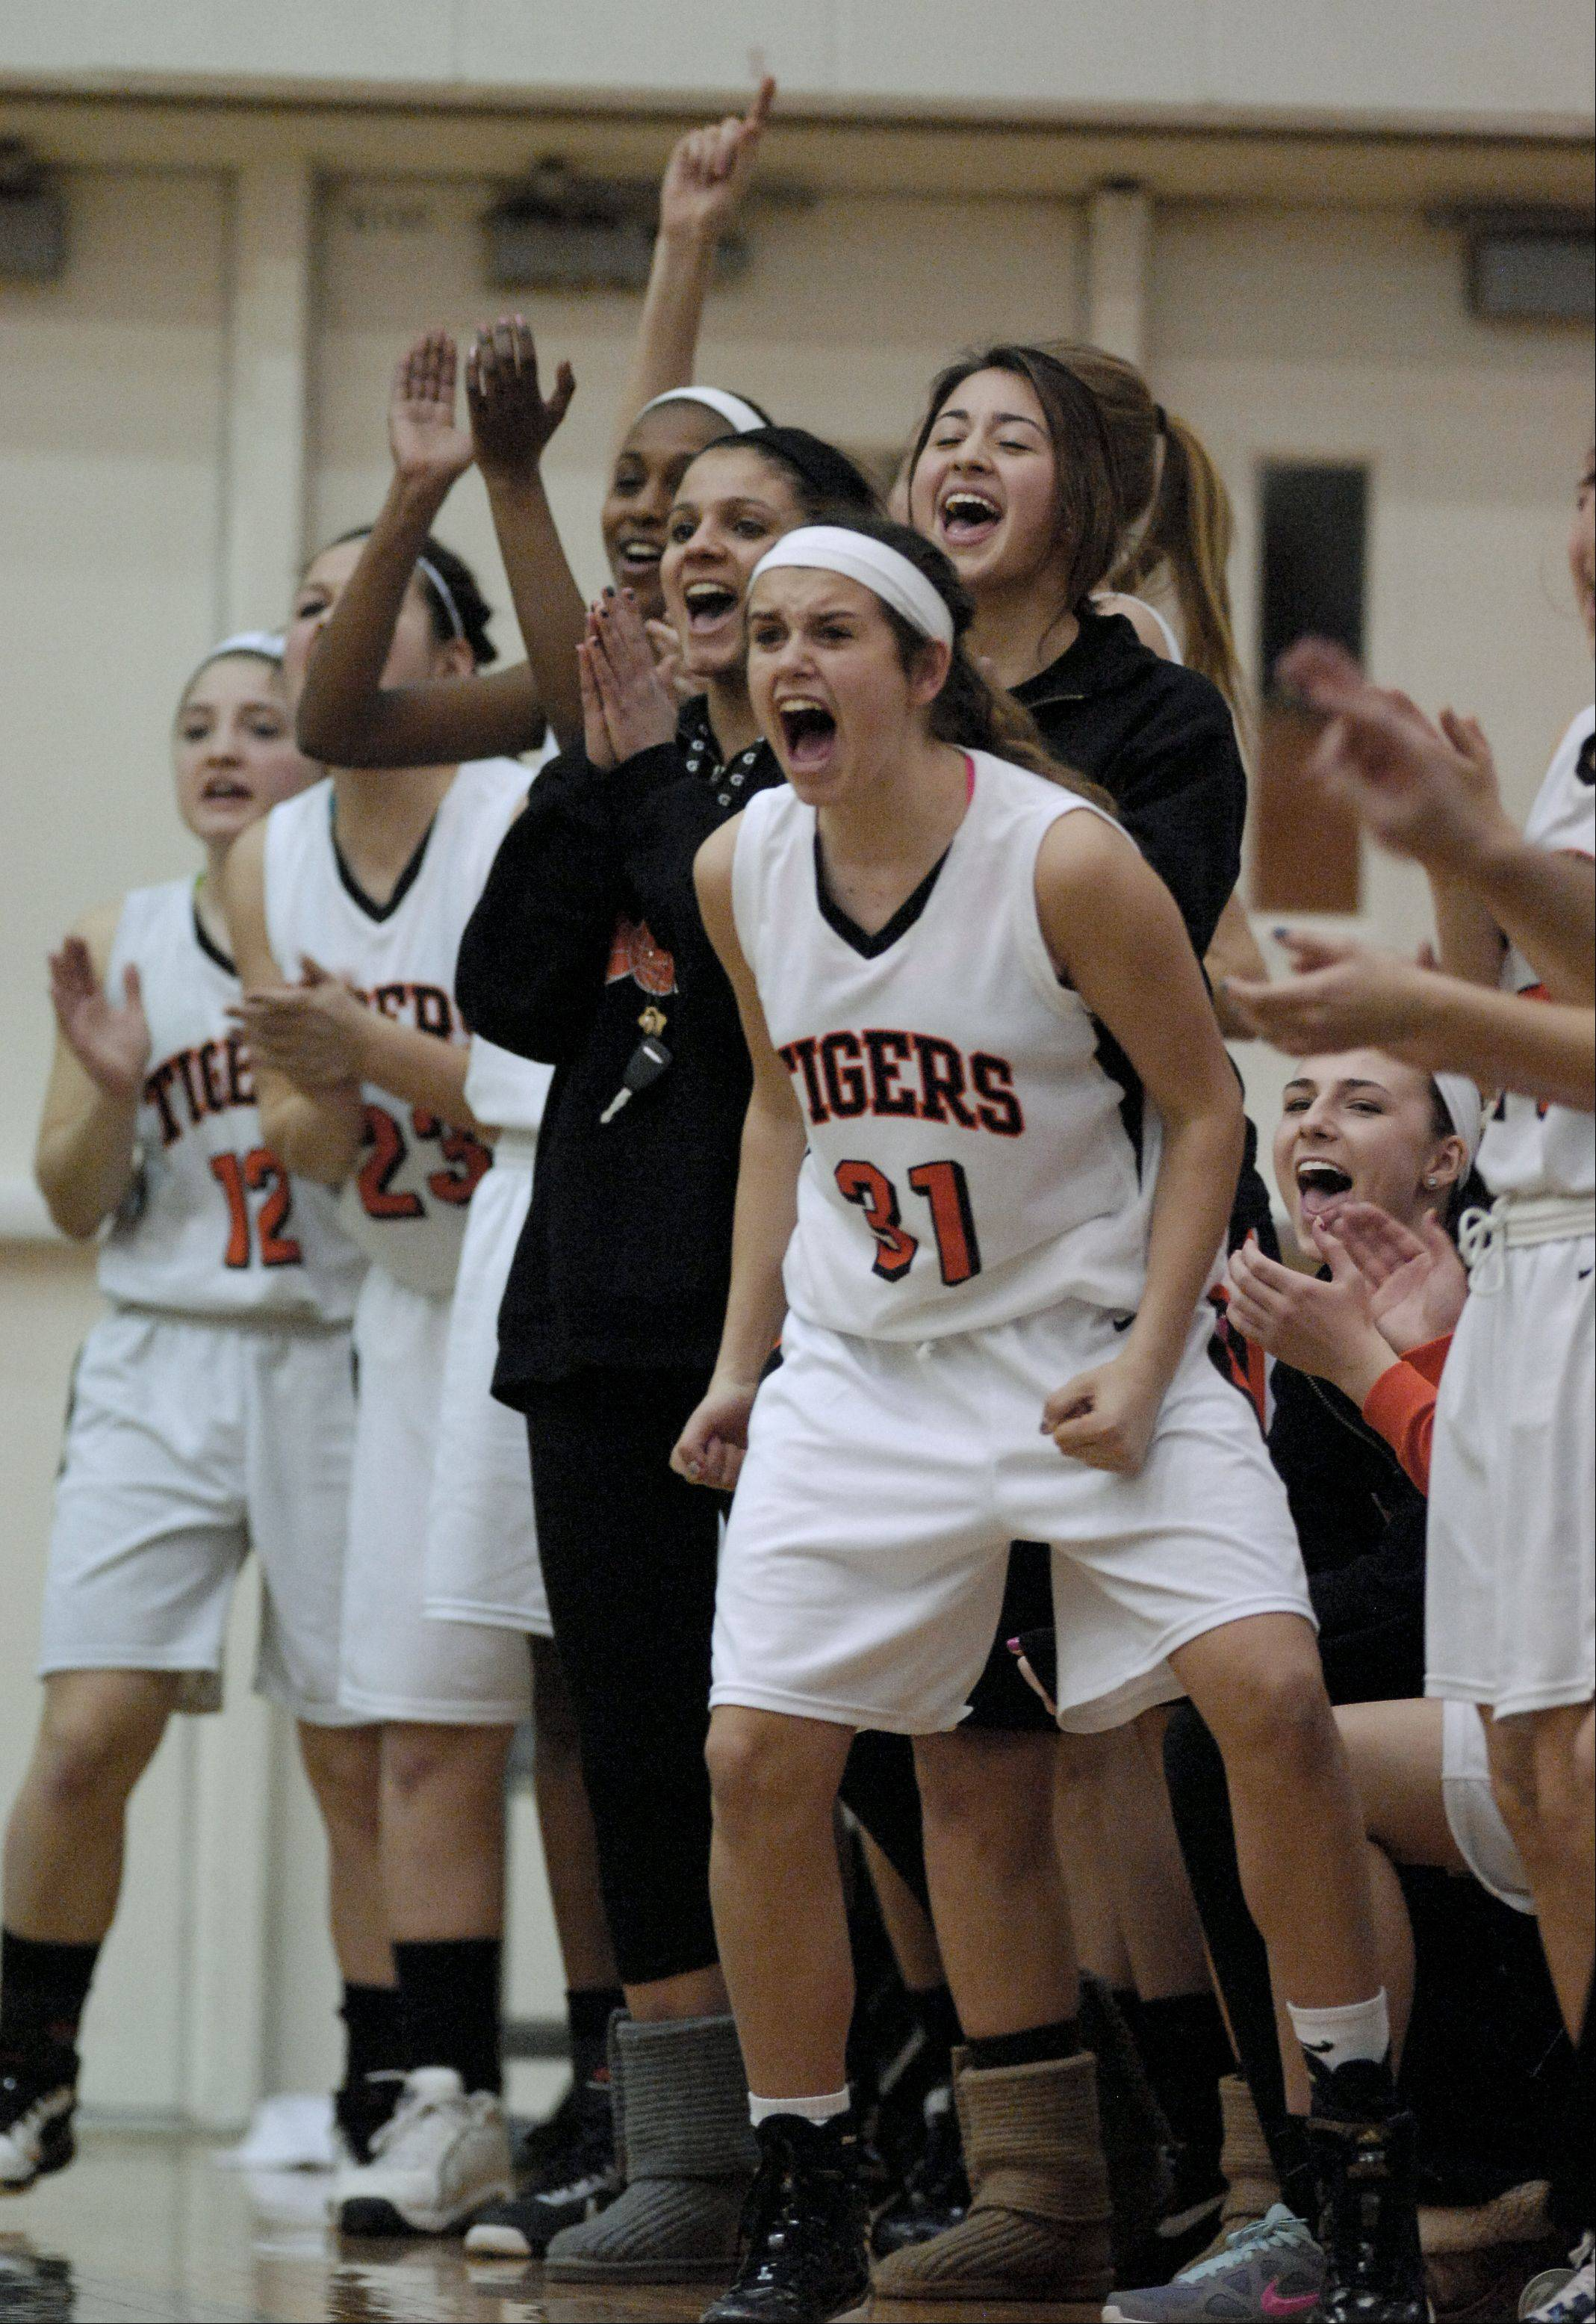 The Wheaton Warrenville South bench cheer on their teammates during the Class 4A girls basketball sectional final against Wheaton North played at Bartlett High School, Thursday.